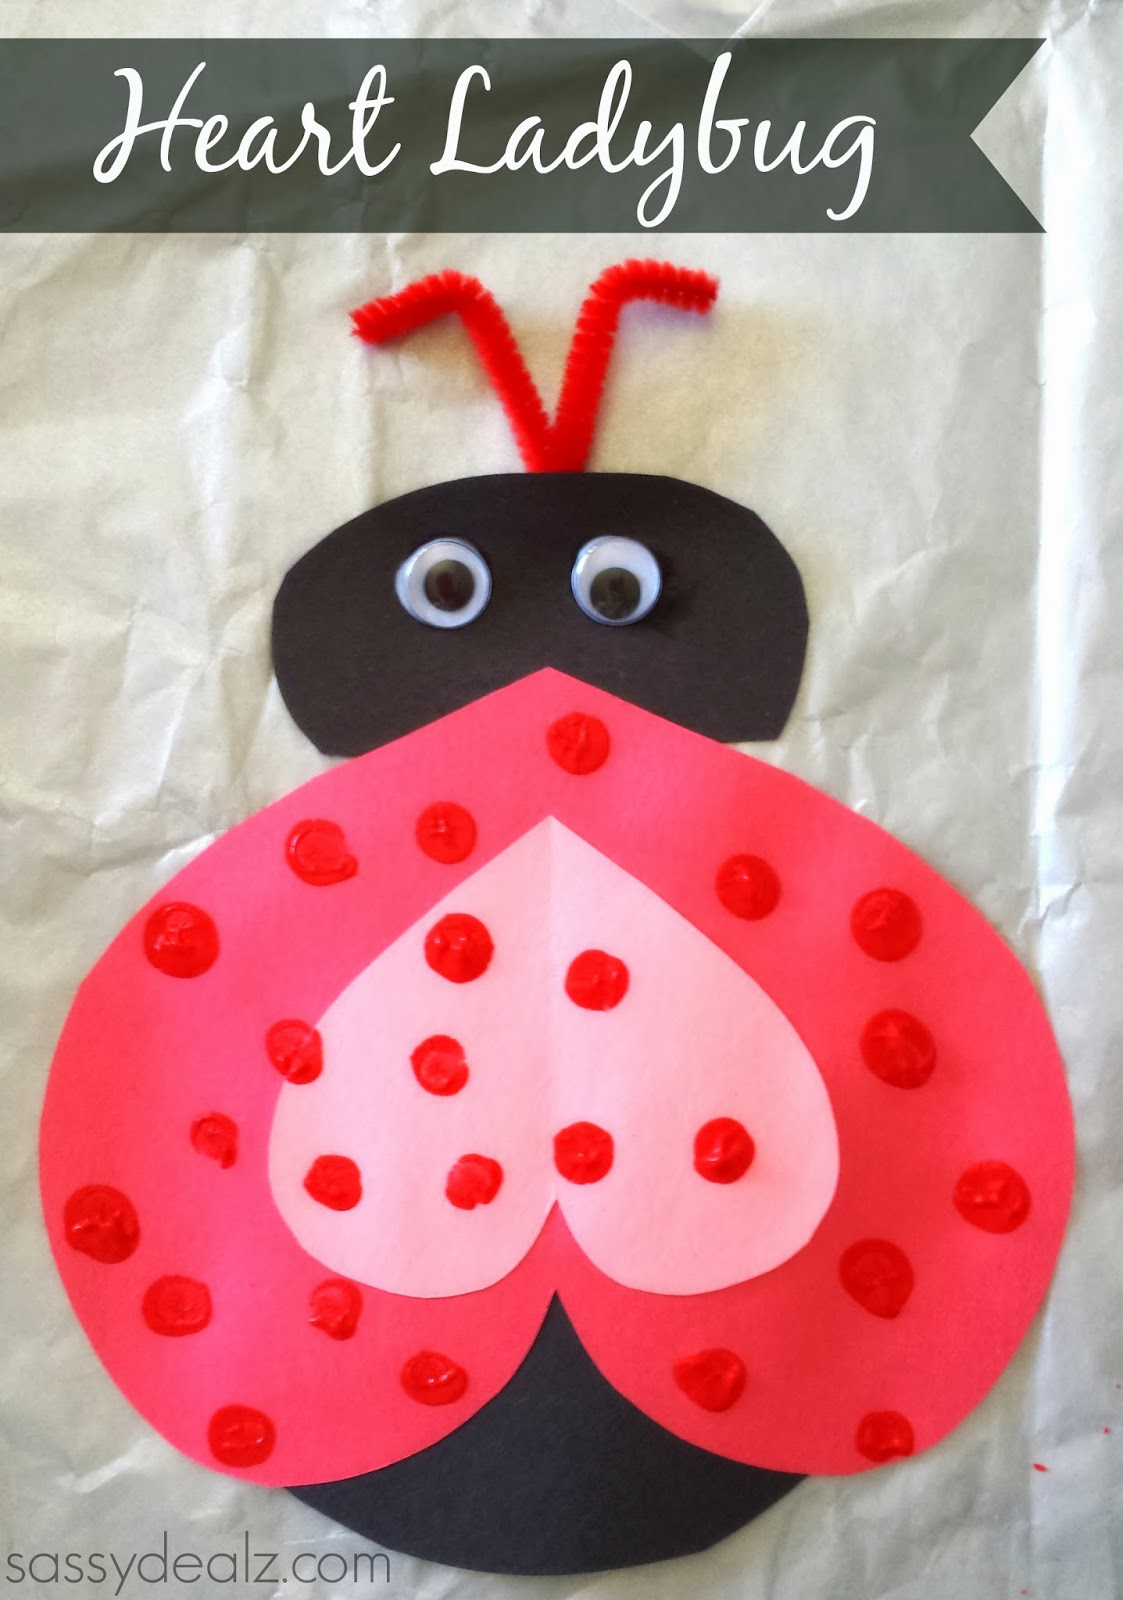 Heart ladybug valentines day craft for kids crafty morning for Crafts for valentines day ideas